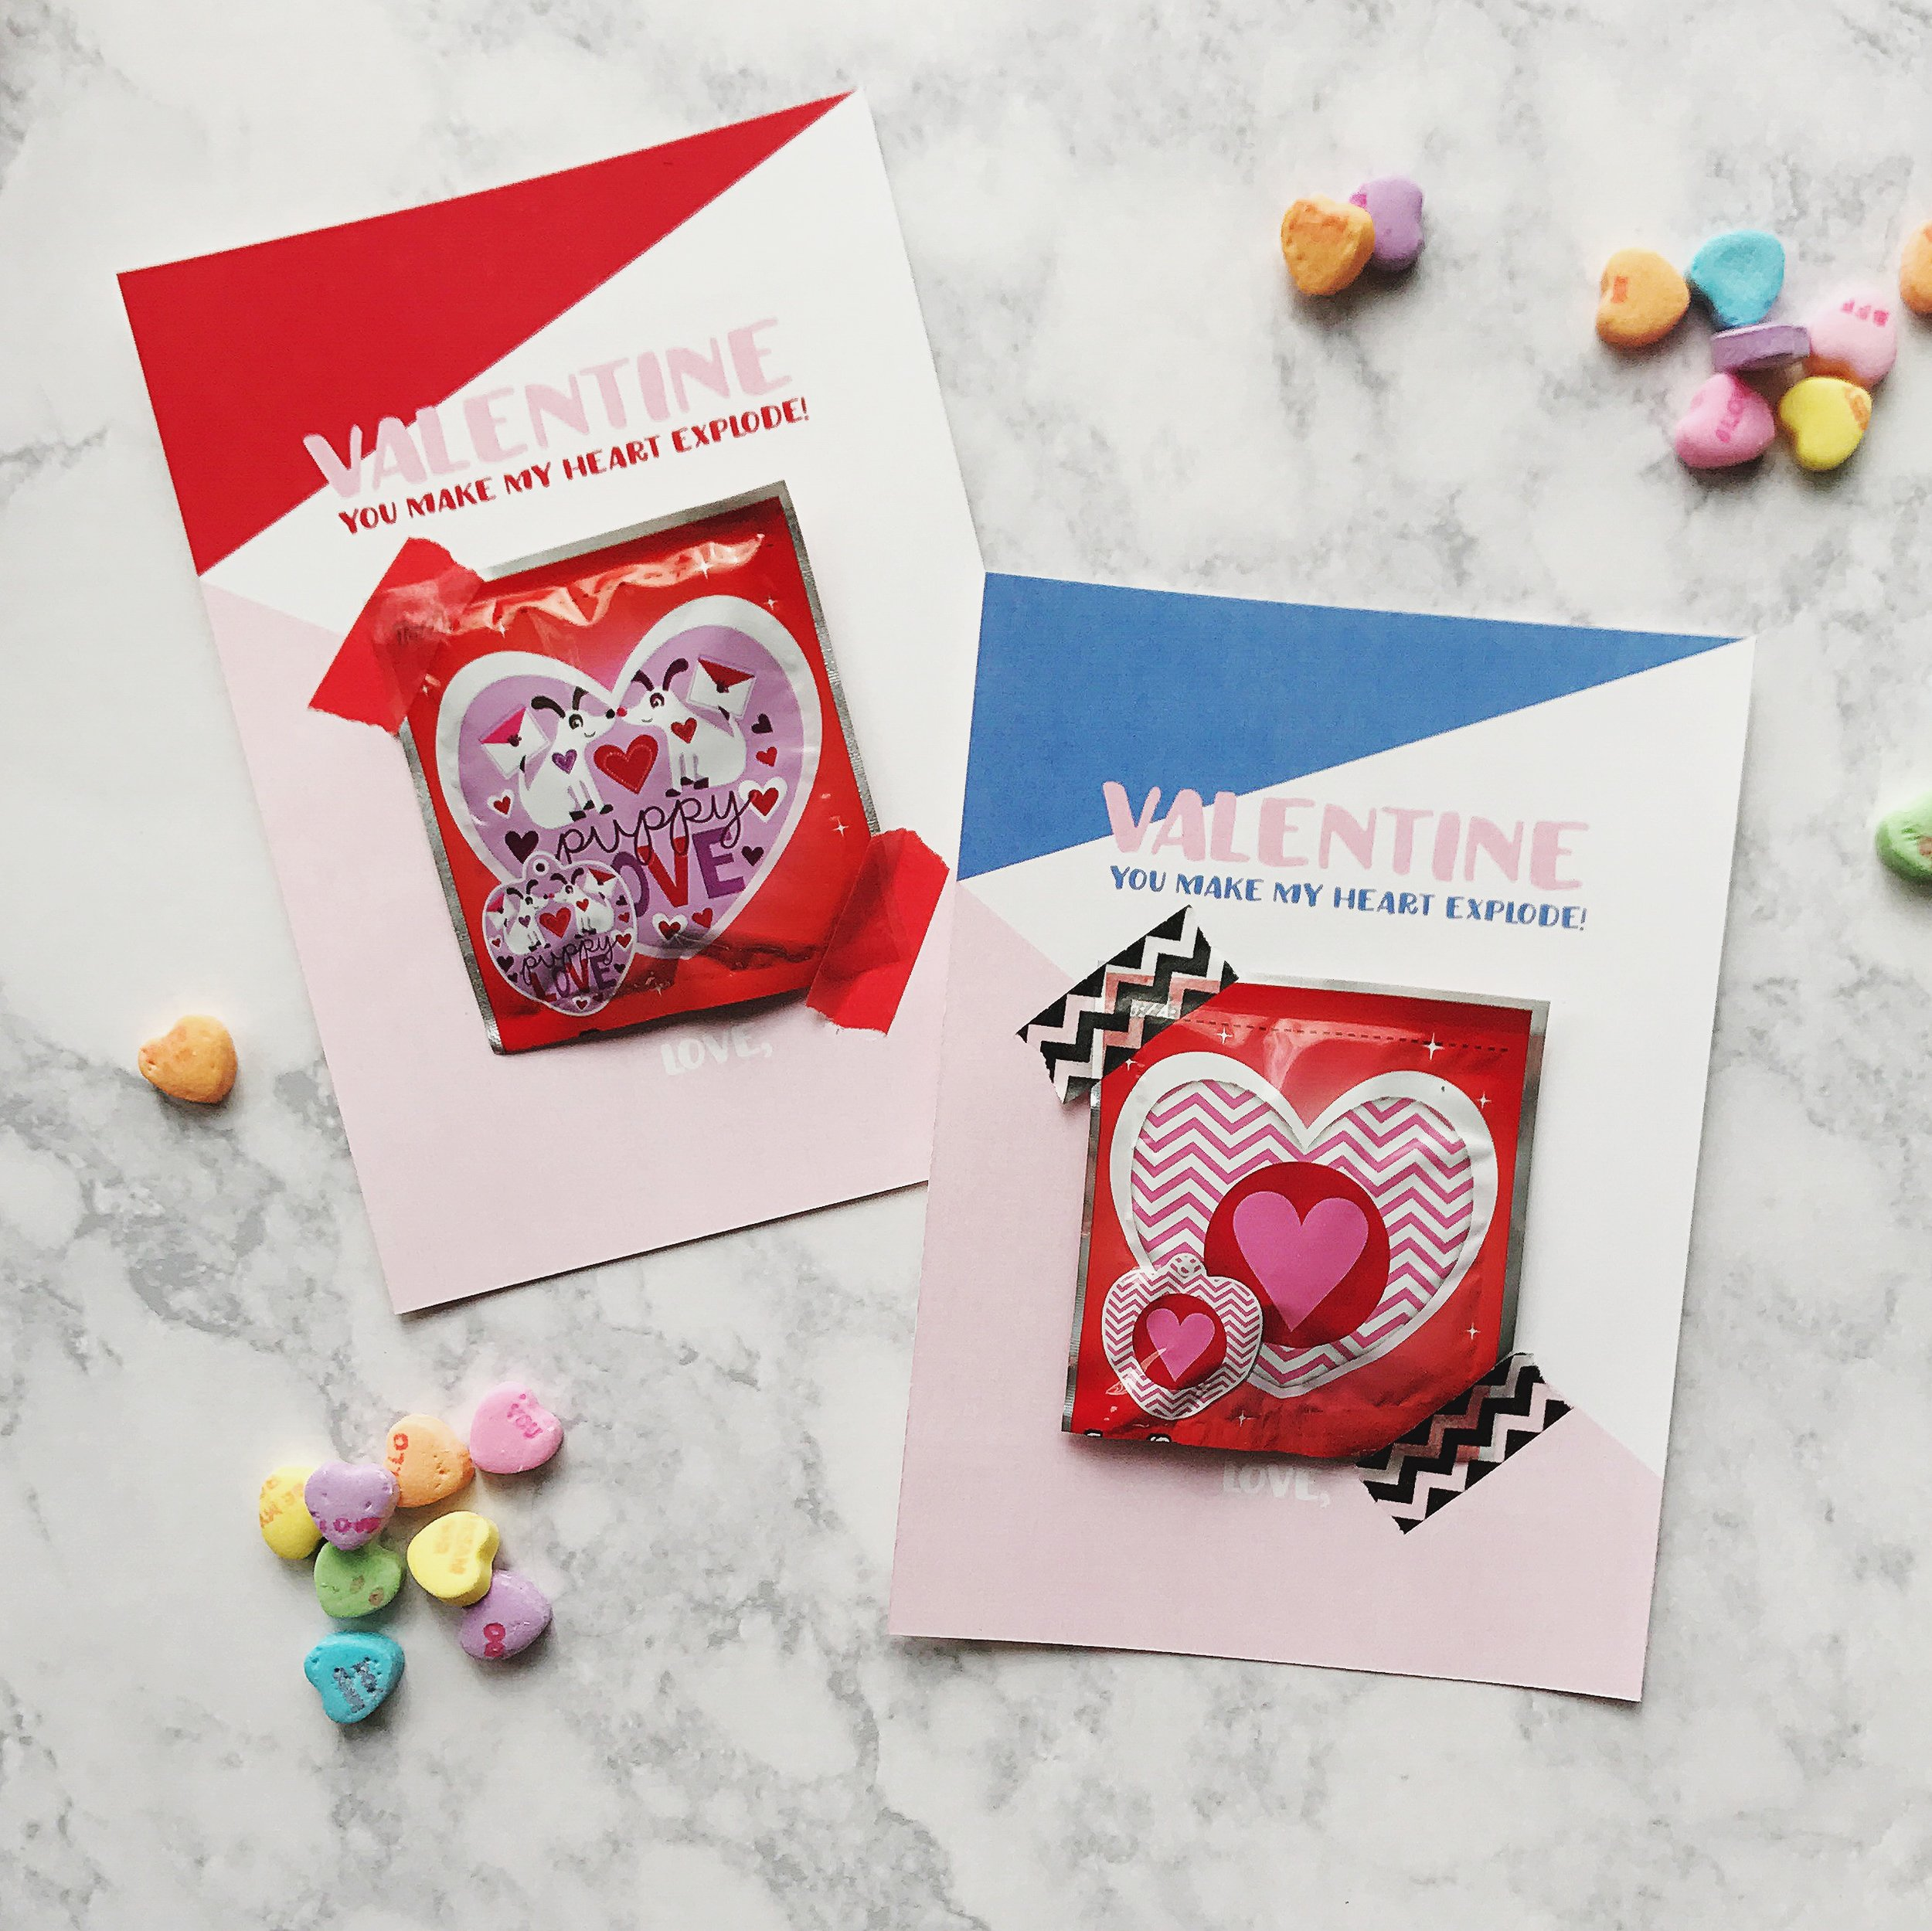 Free Printable Valentines Cards Whack a pack